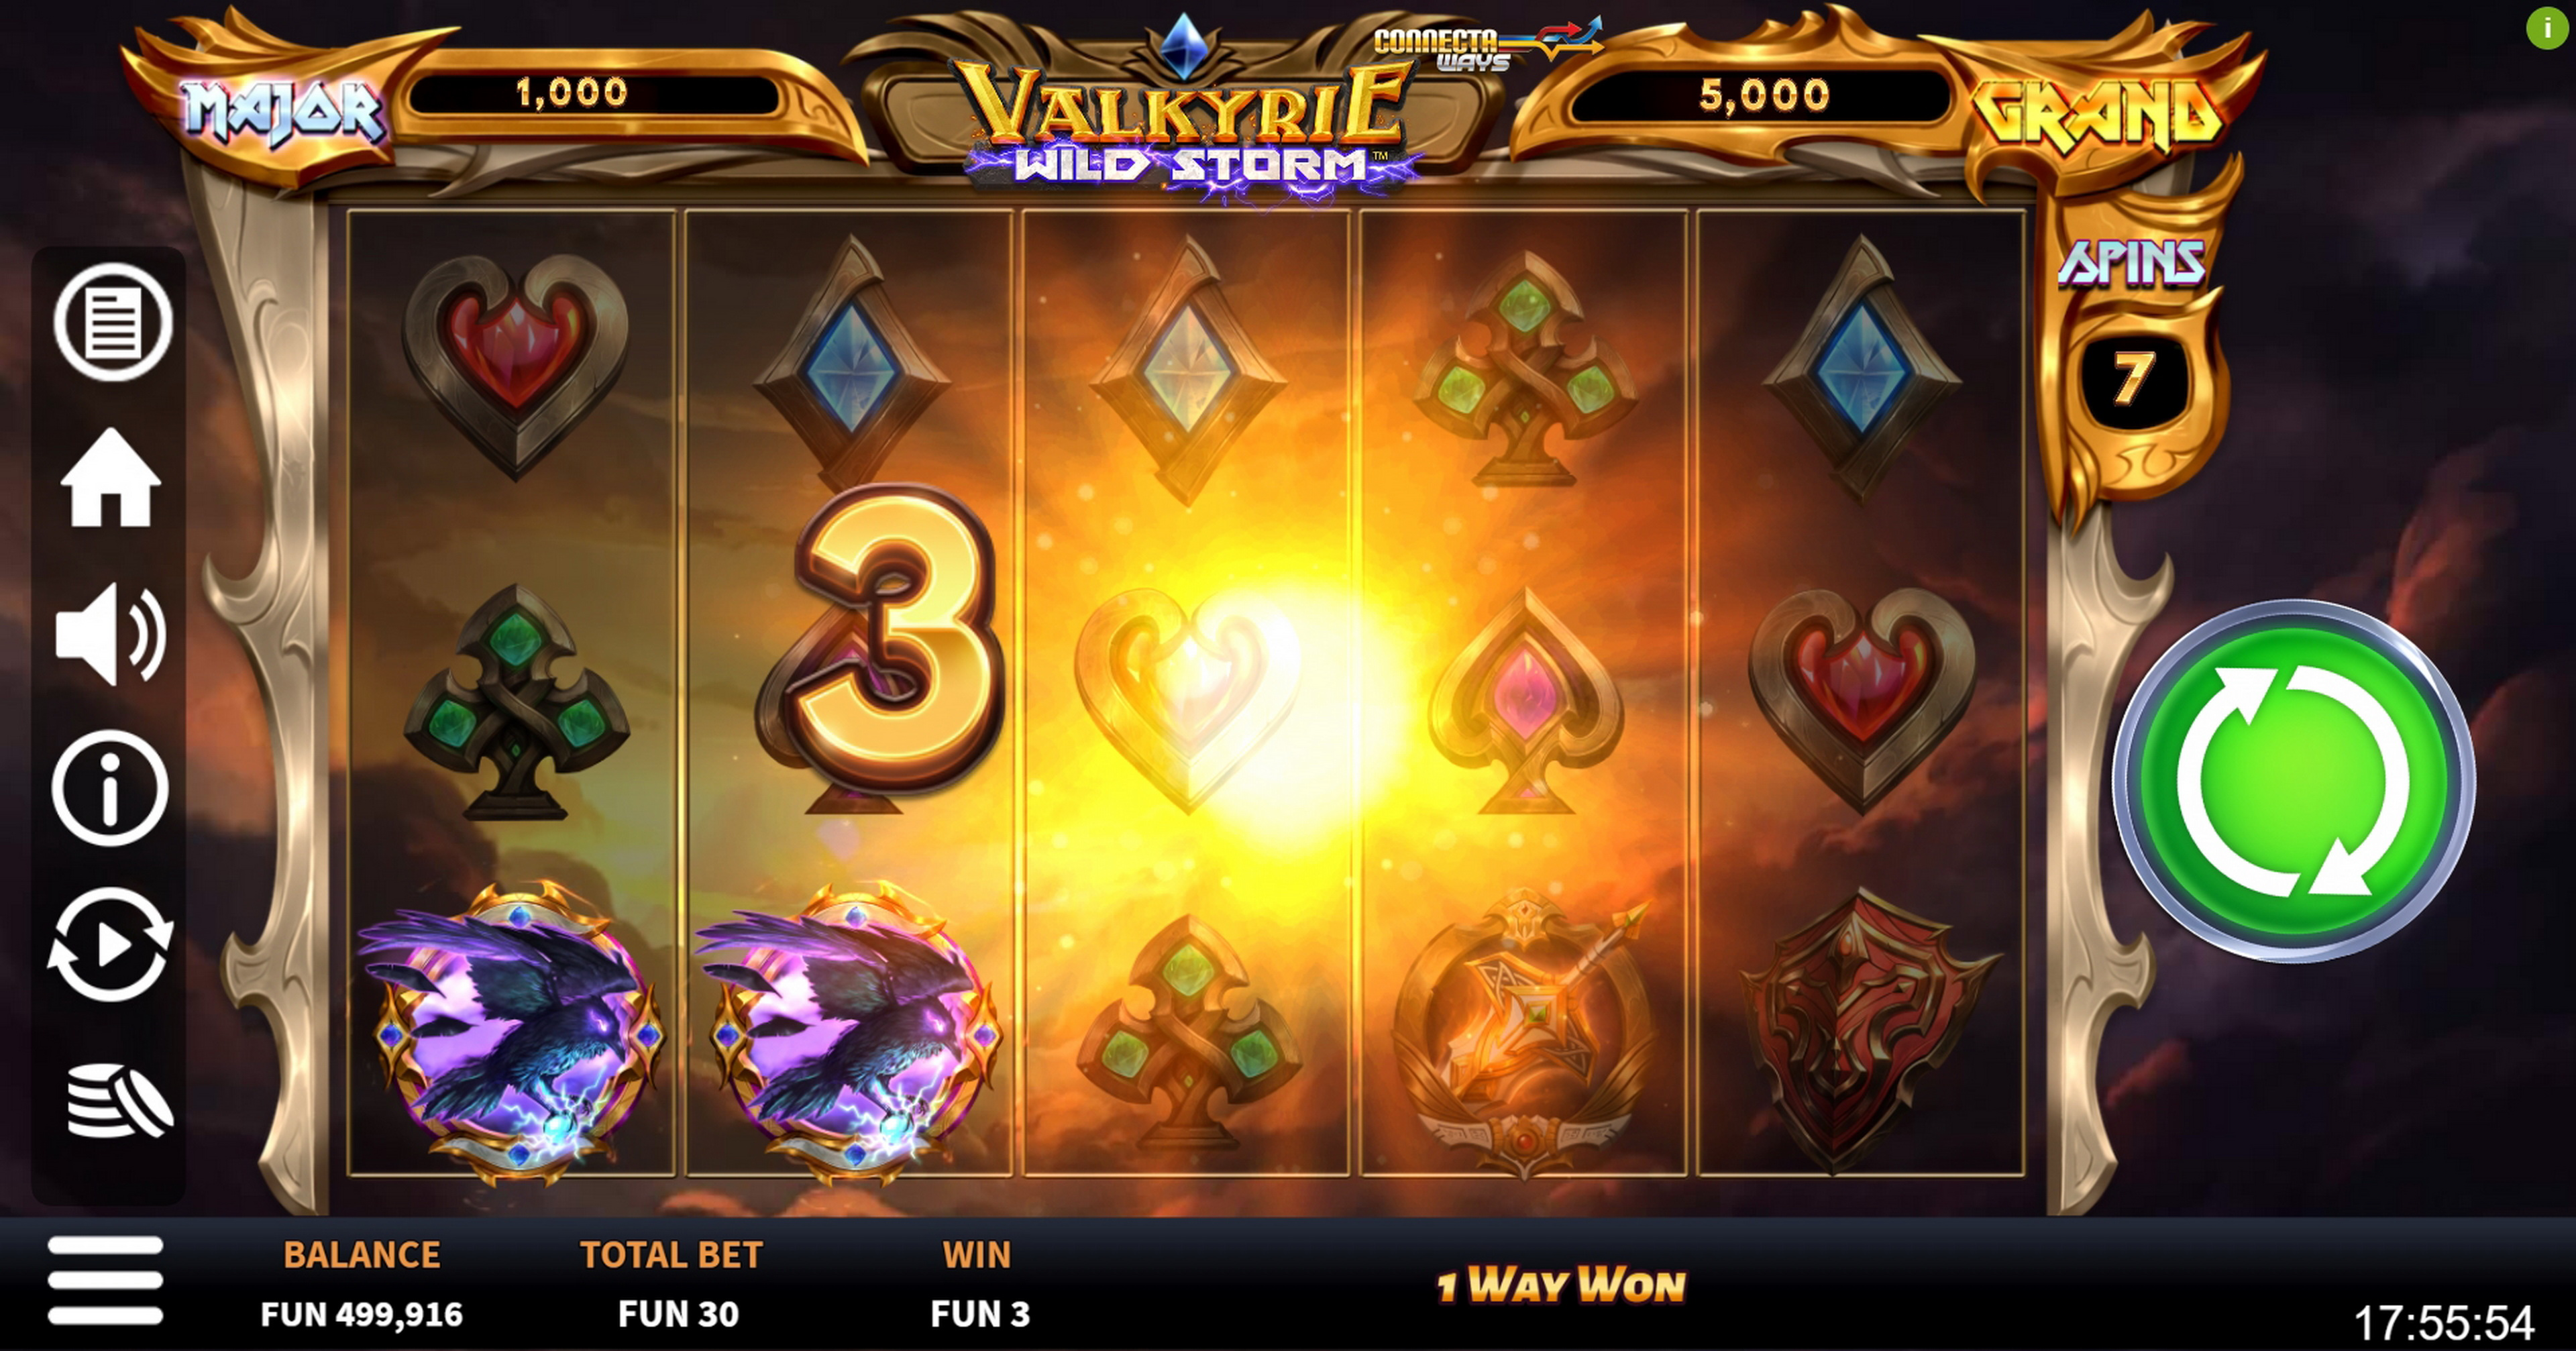 Win Money in Valkyrie Wild Storm Free Slot Game by Boomerang Studios